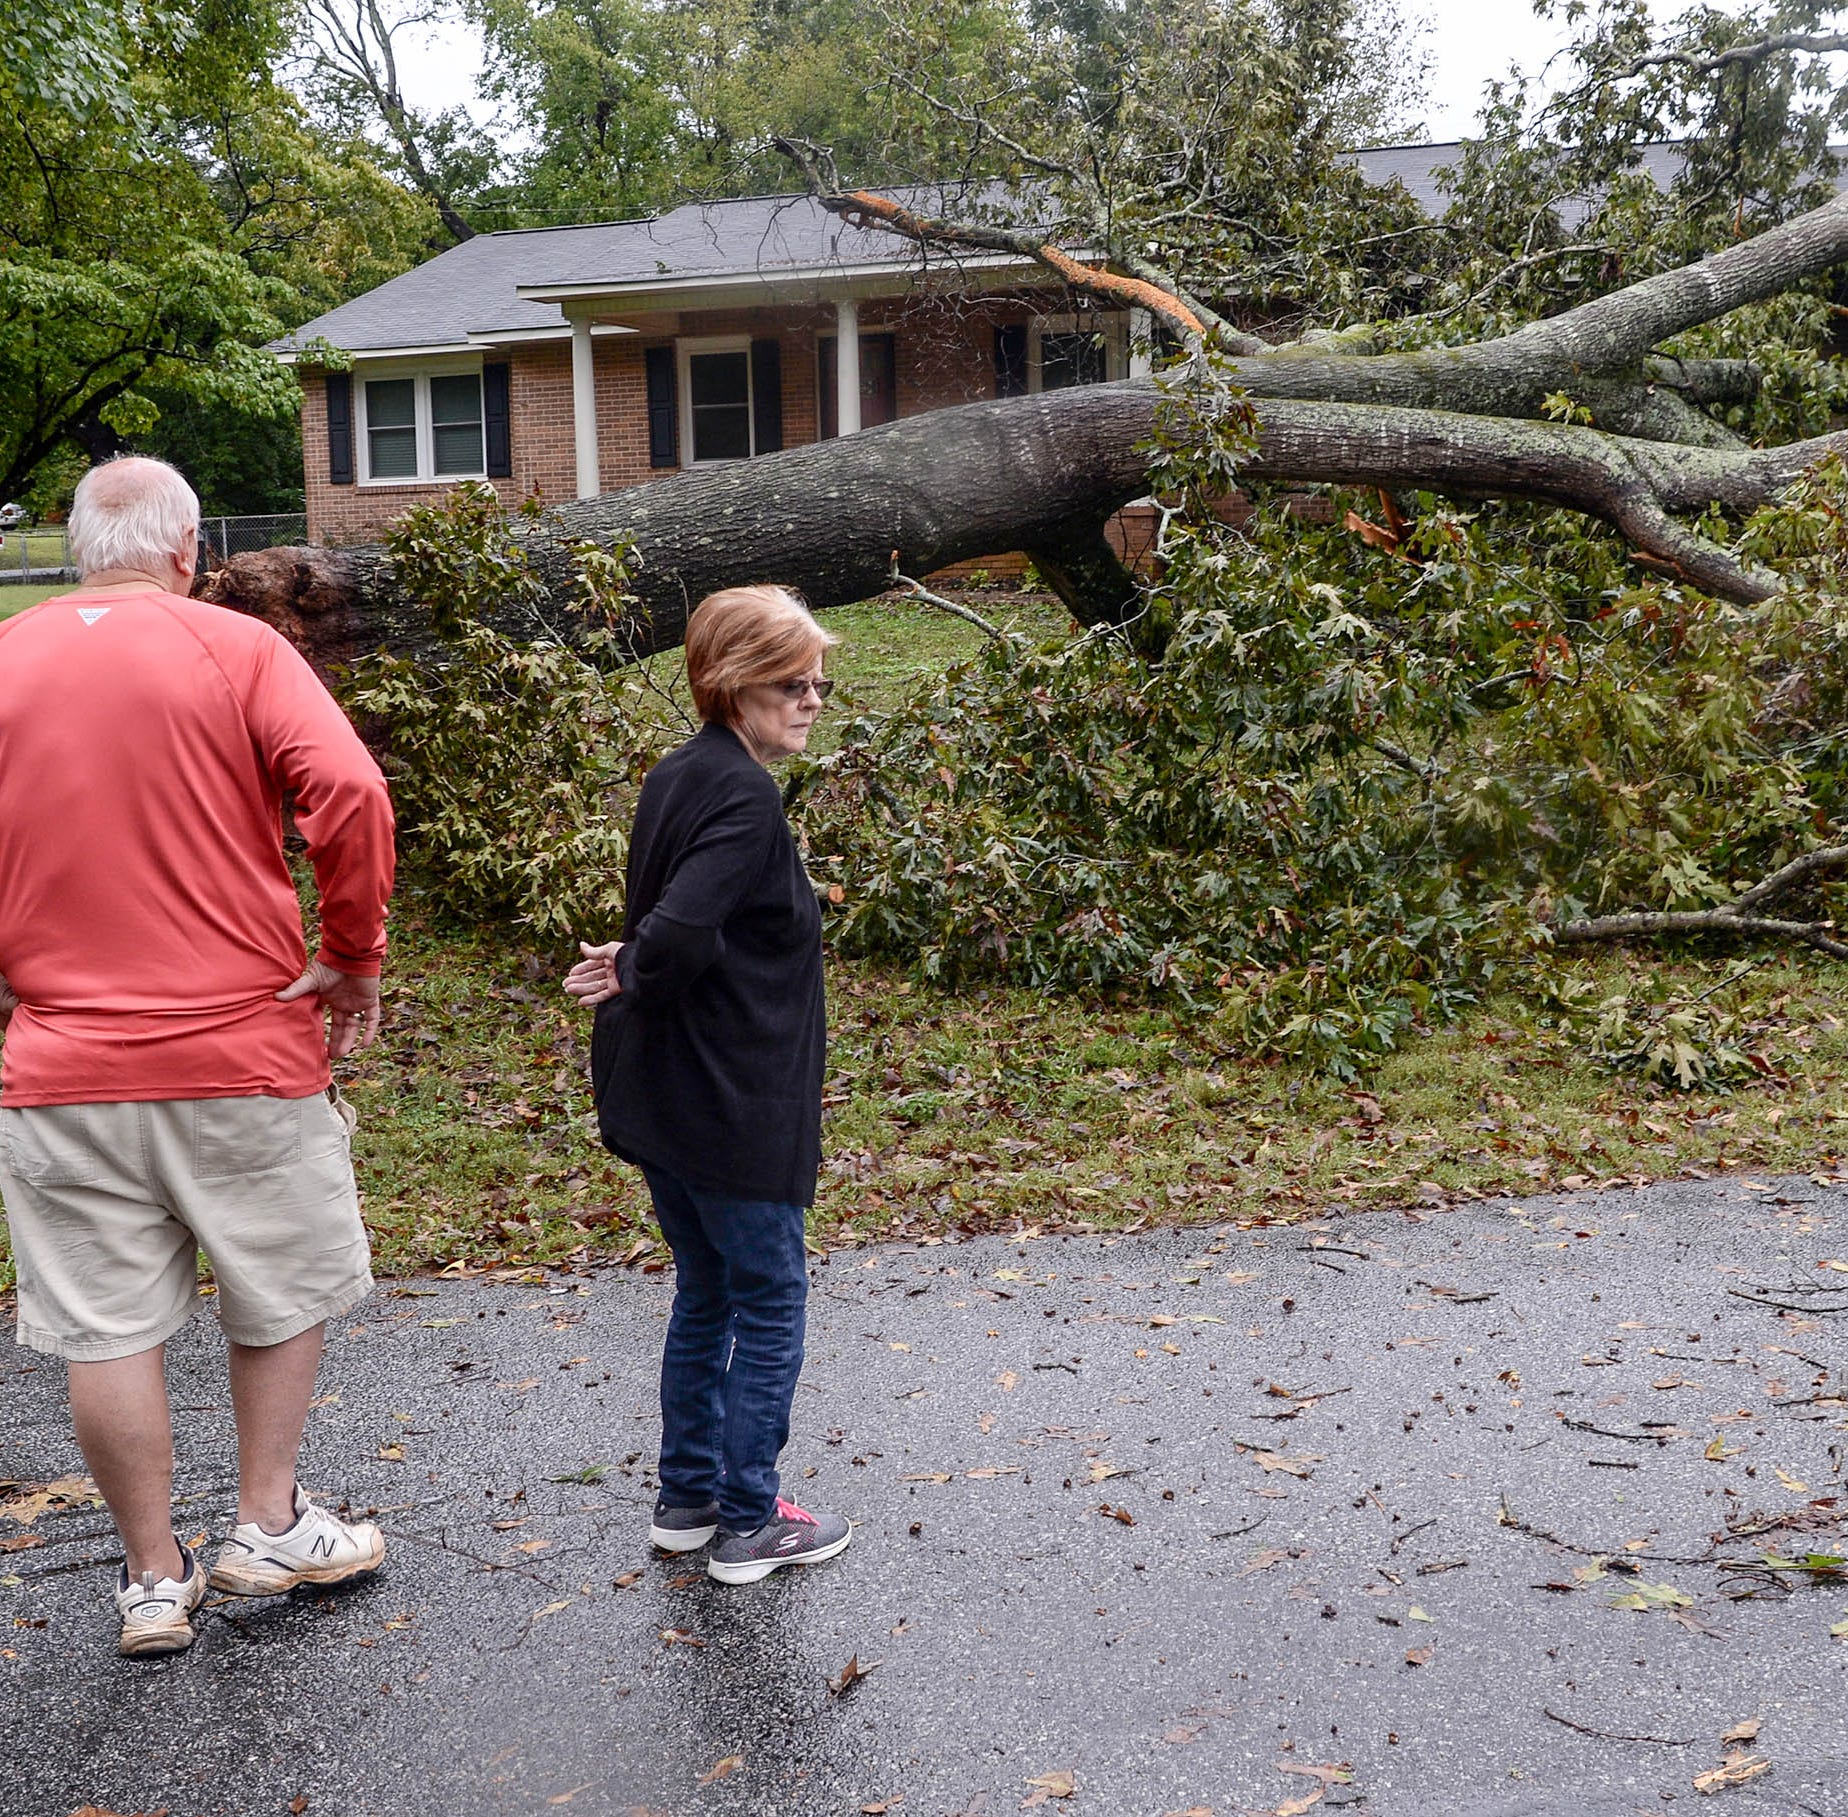 Tropical Storm Michael knocks tree onto family's home, but 2-year-old twins are unhurt